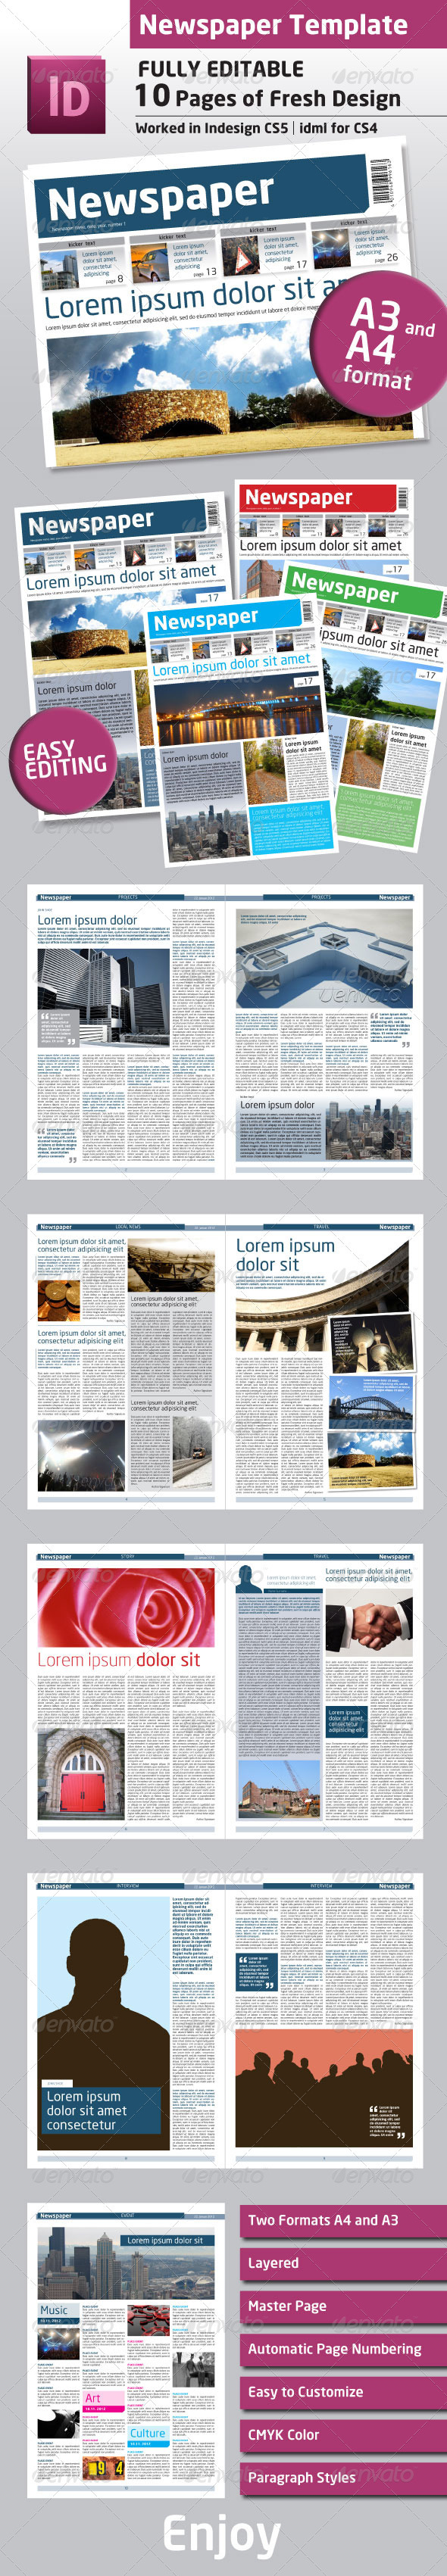 GraphicRiver Newspaper Template A4 and A3 Format 10 Pages 924381